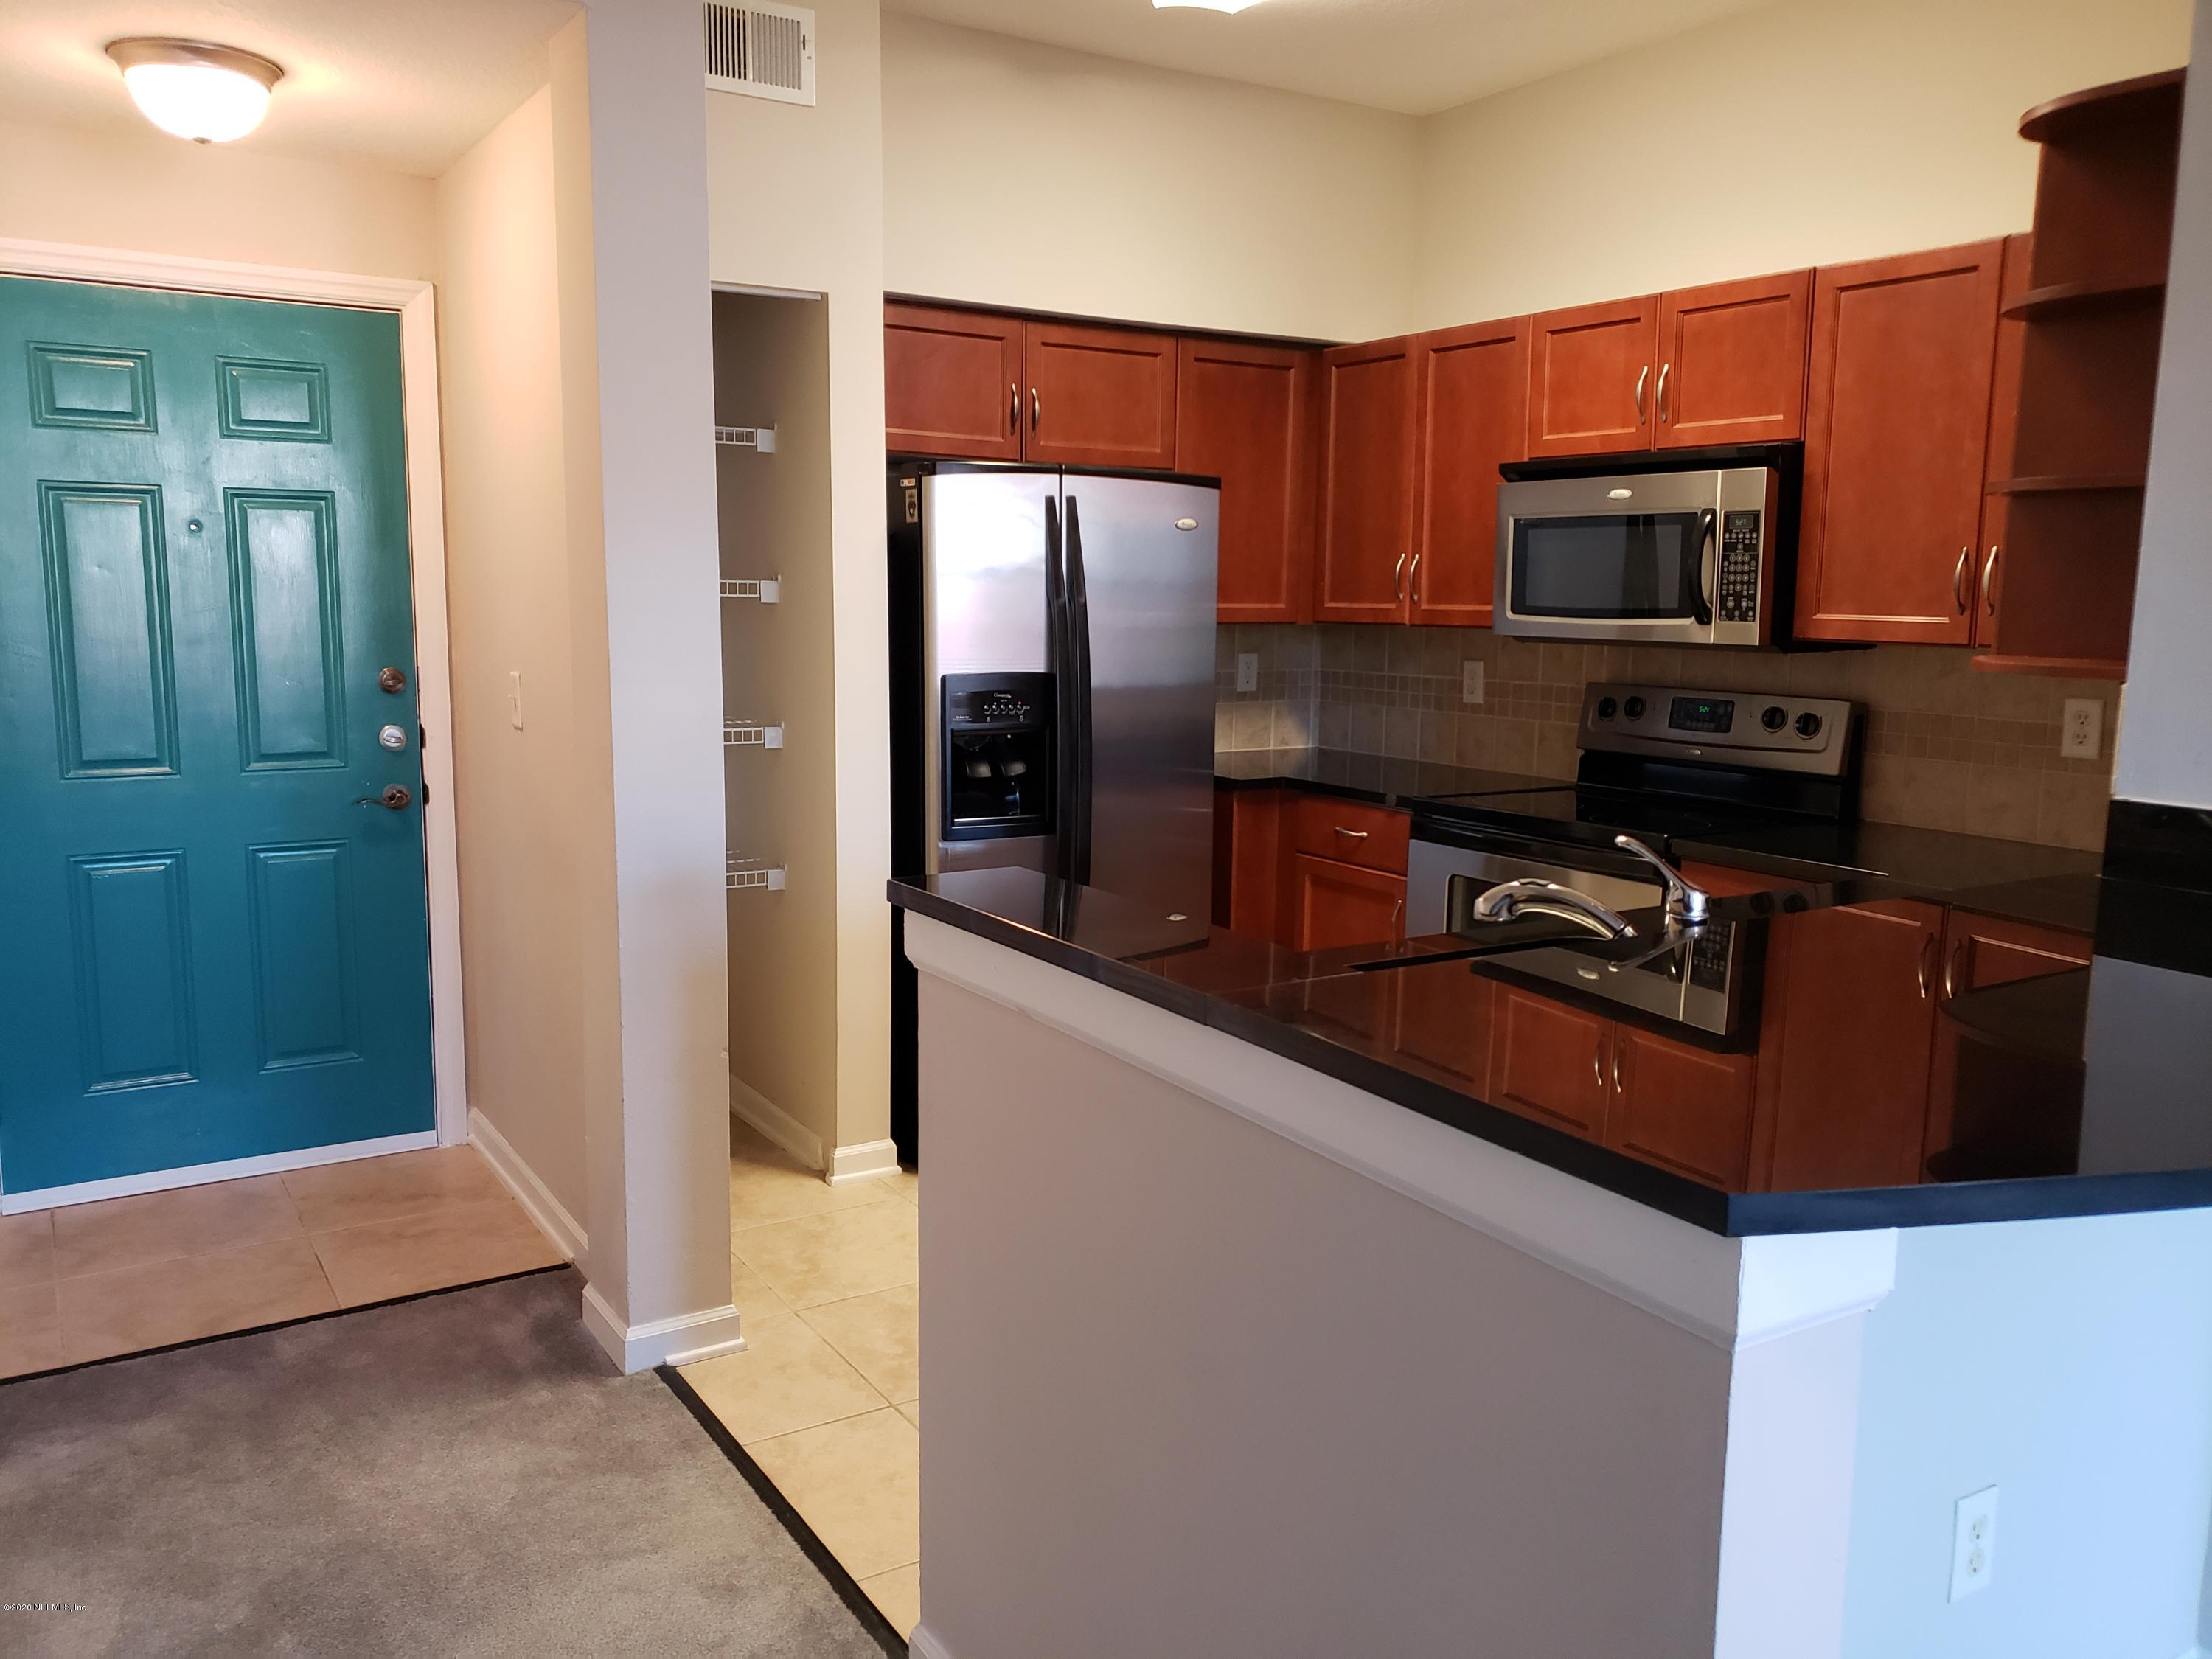 10435 MID TOWN, JACKSONVILLE, FLORIDA 32246, 1 Bedroom Bedrooms, ,1 BathroomBathrooms,Residential,For sale,MID TOWN,1051776